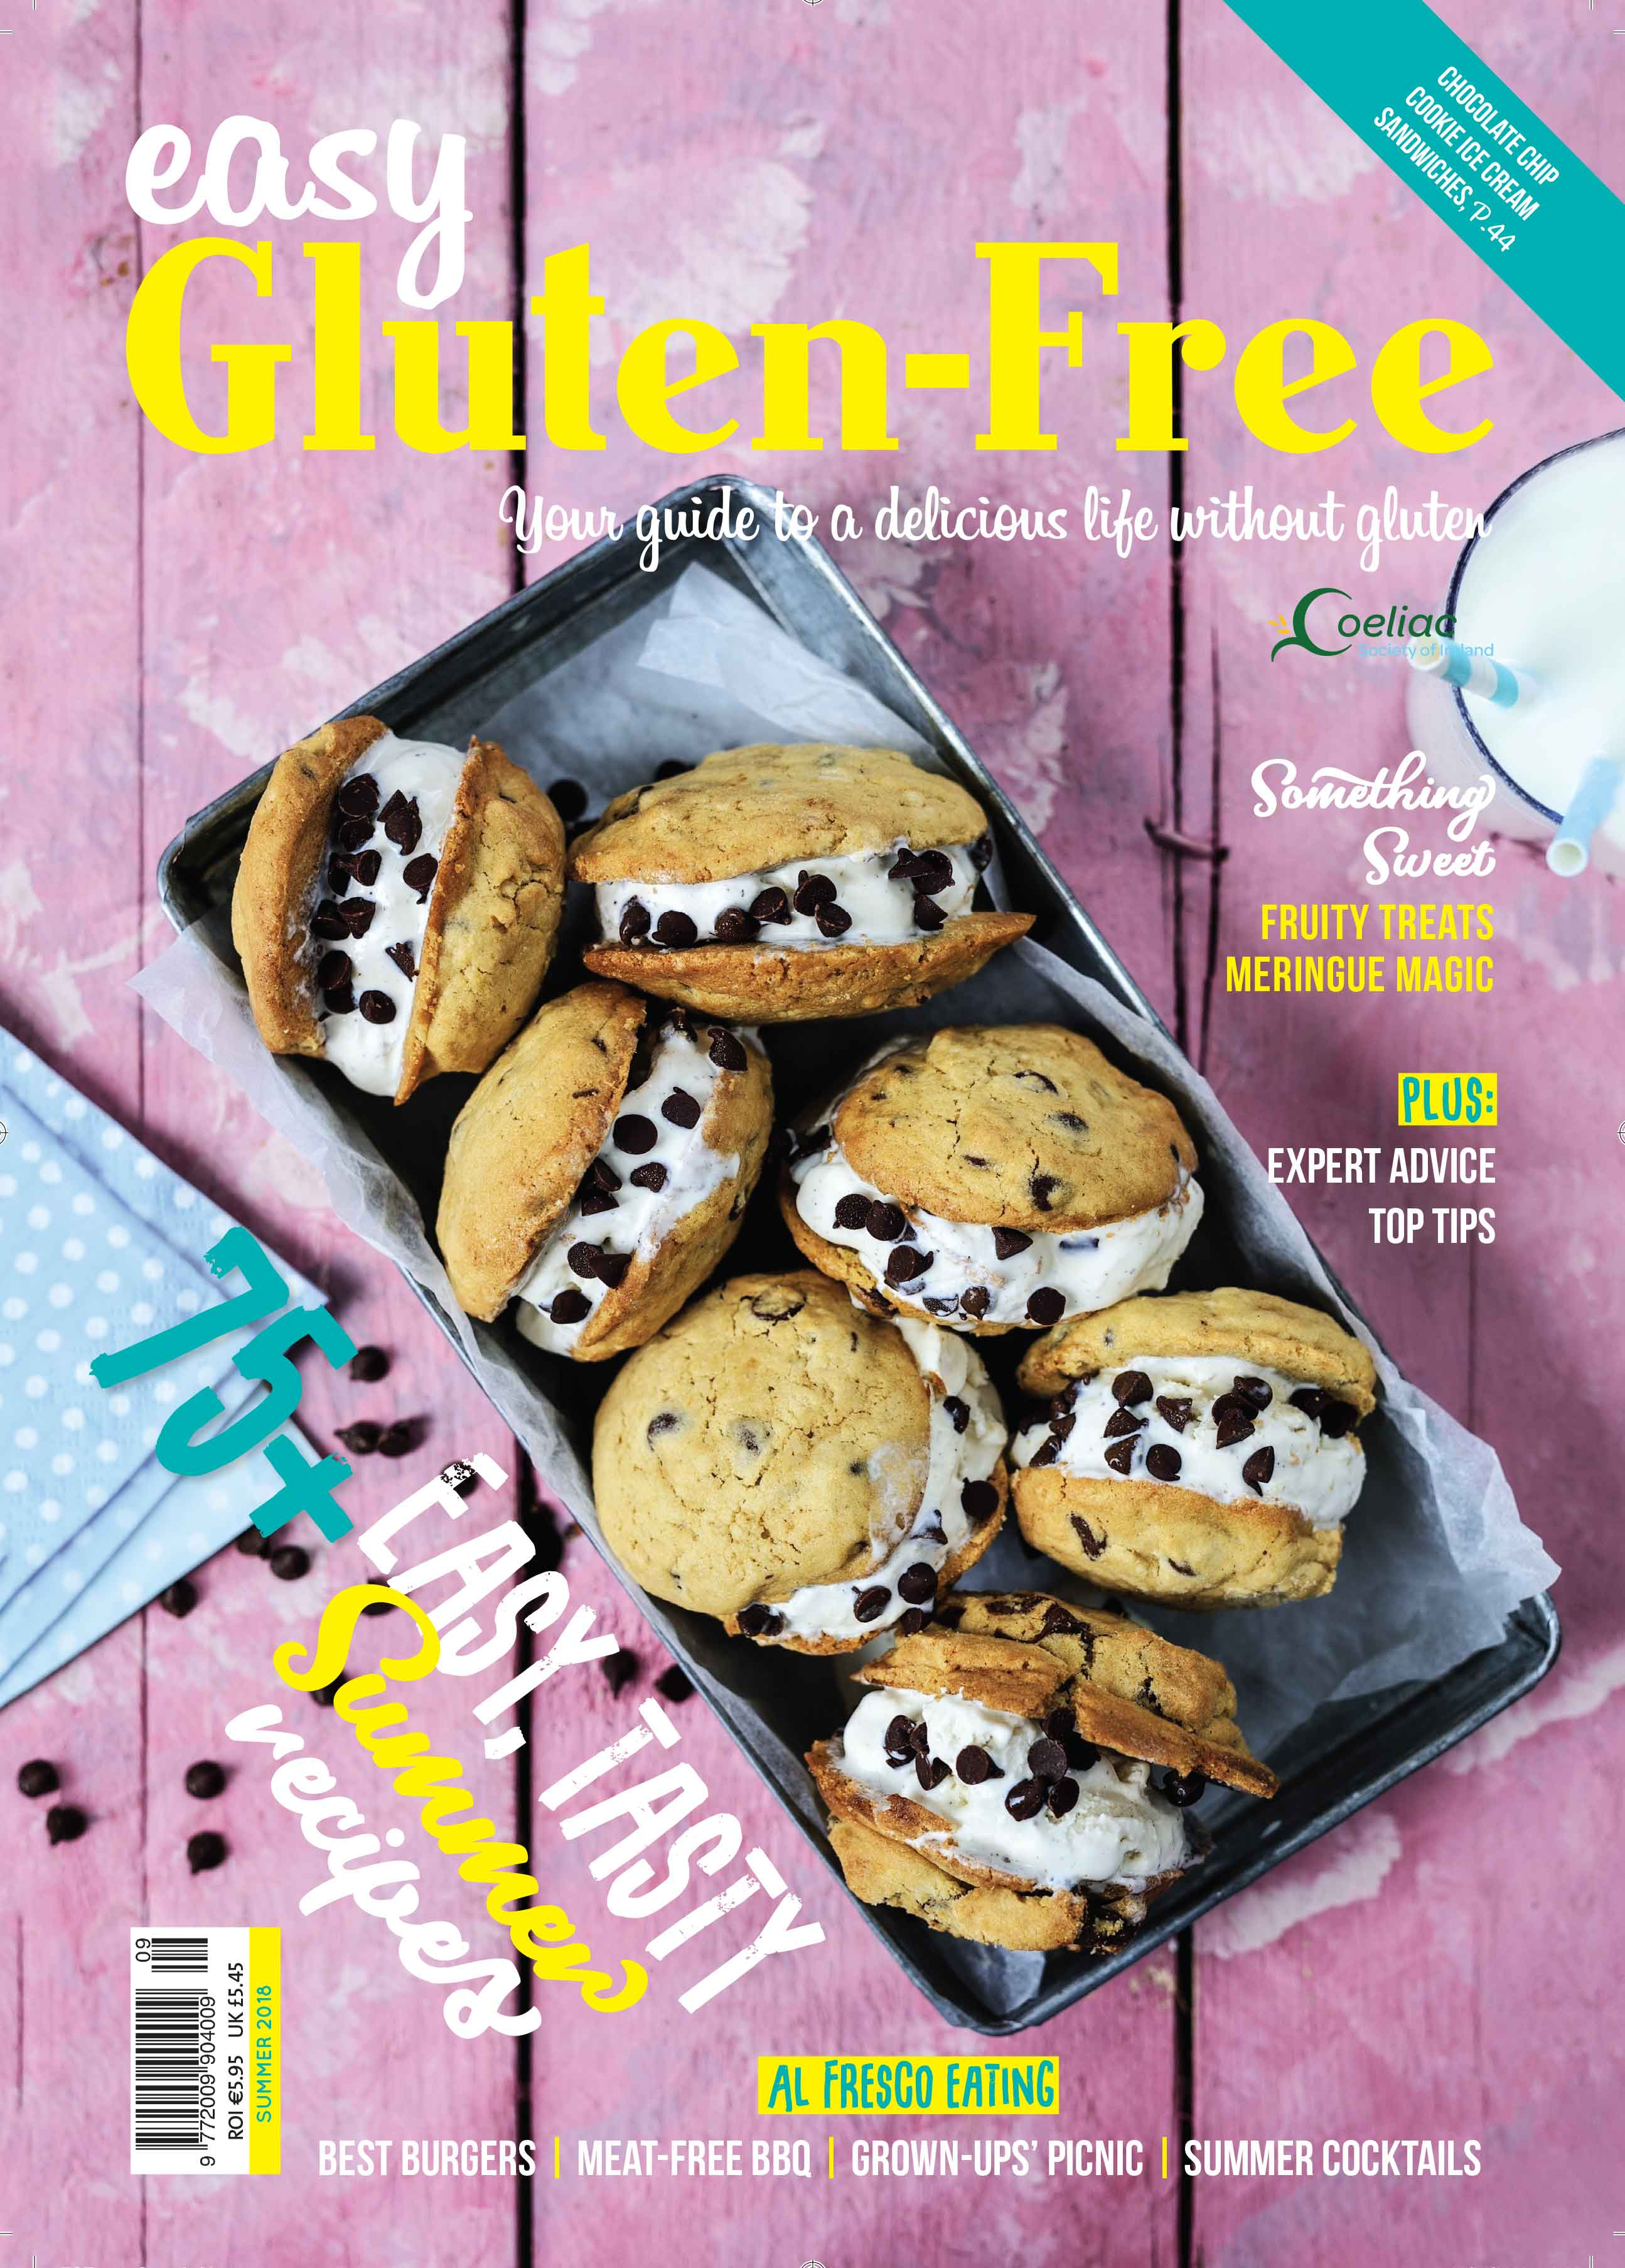 Easy Gluten Free issue 9 cover summer 2018